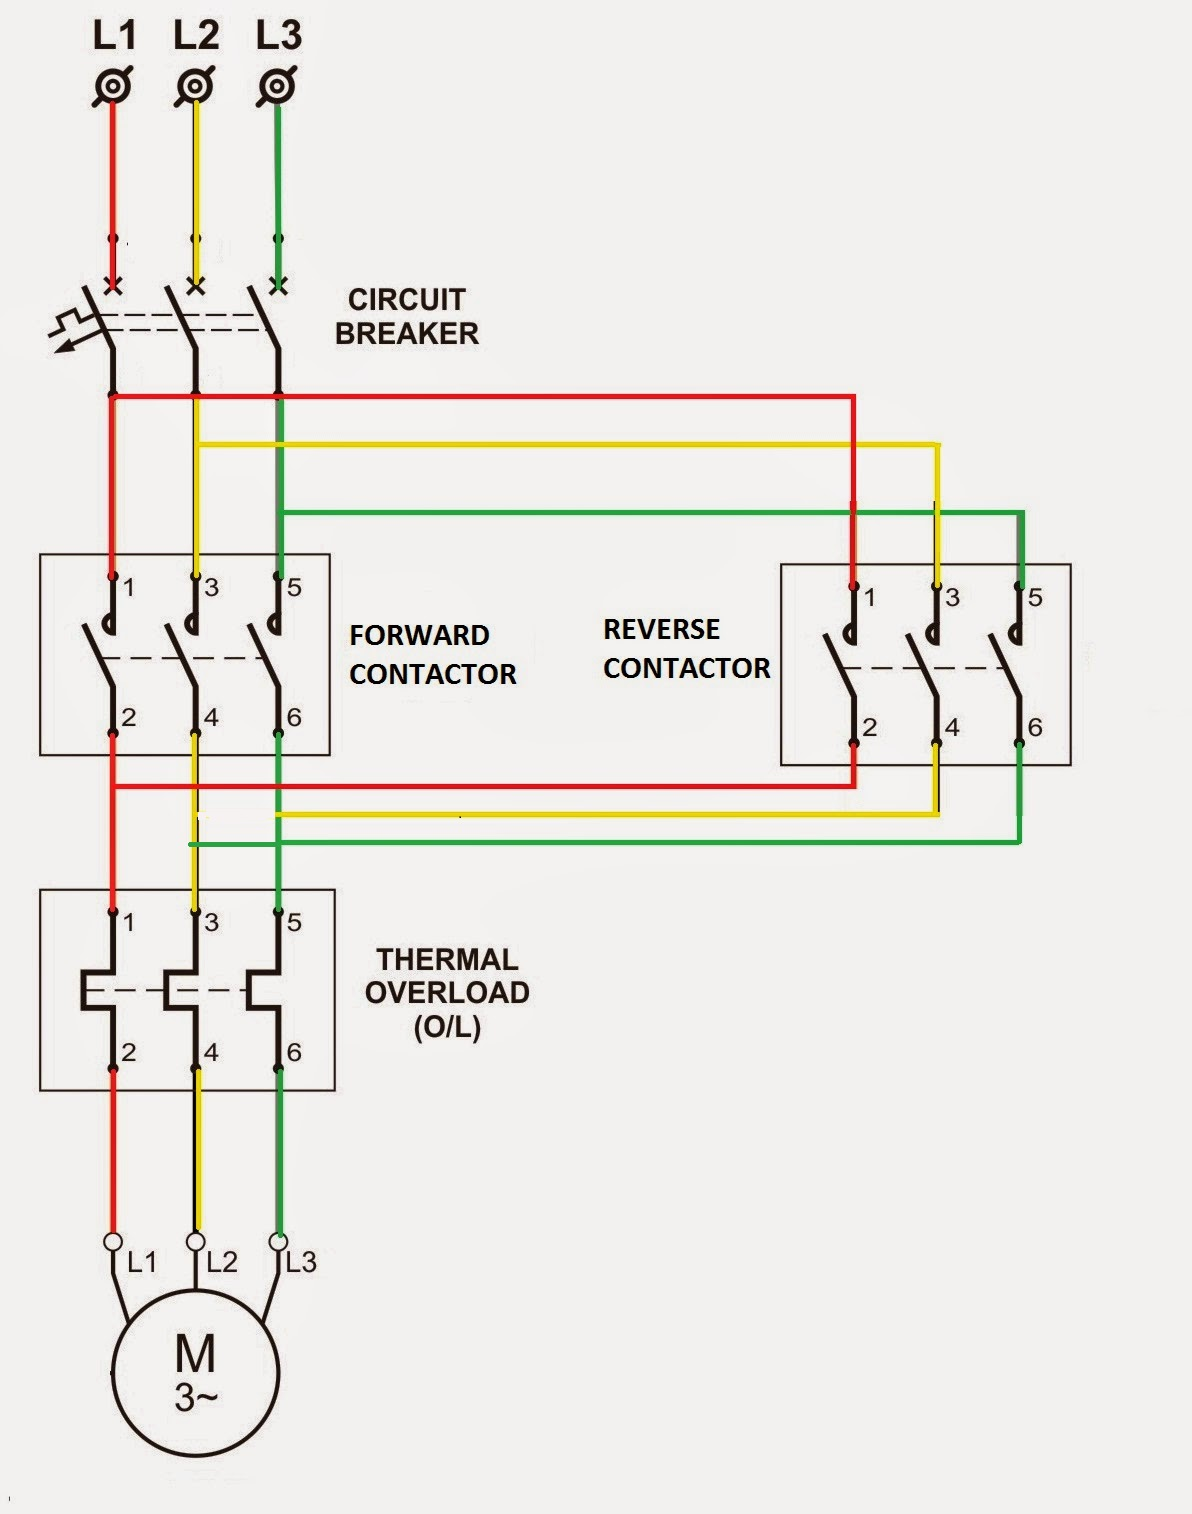 Forward And Reverse Wiring Diagram Books Of Single Phase Motor Electrical Standards Direct Online Applications Rh Electrialstandards Blogspot Com Contactor